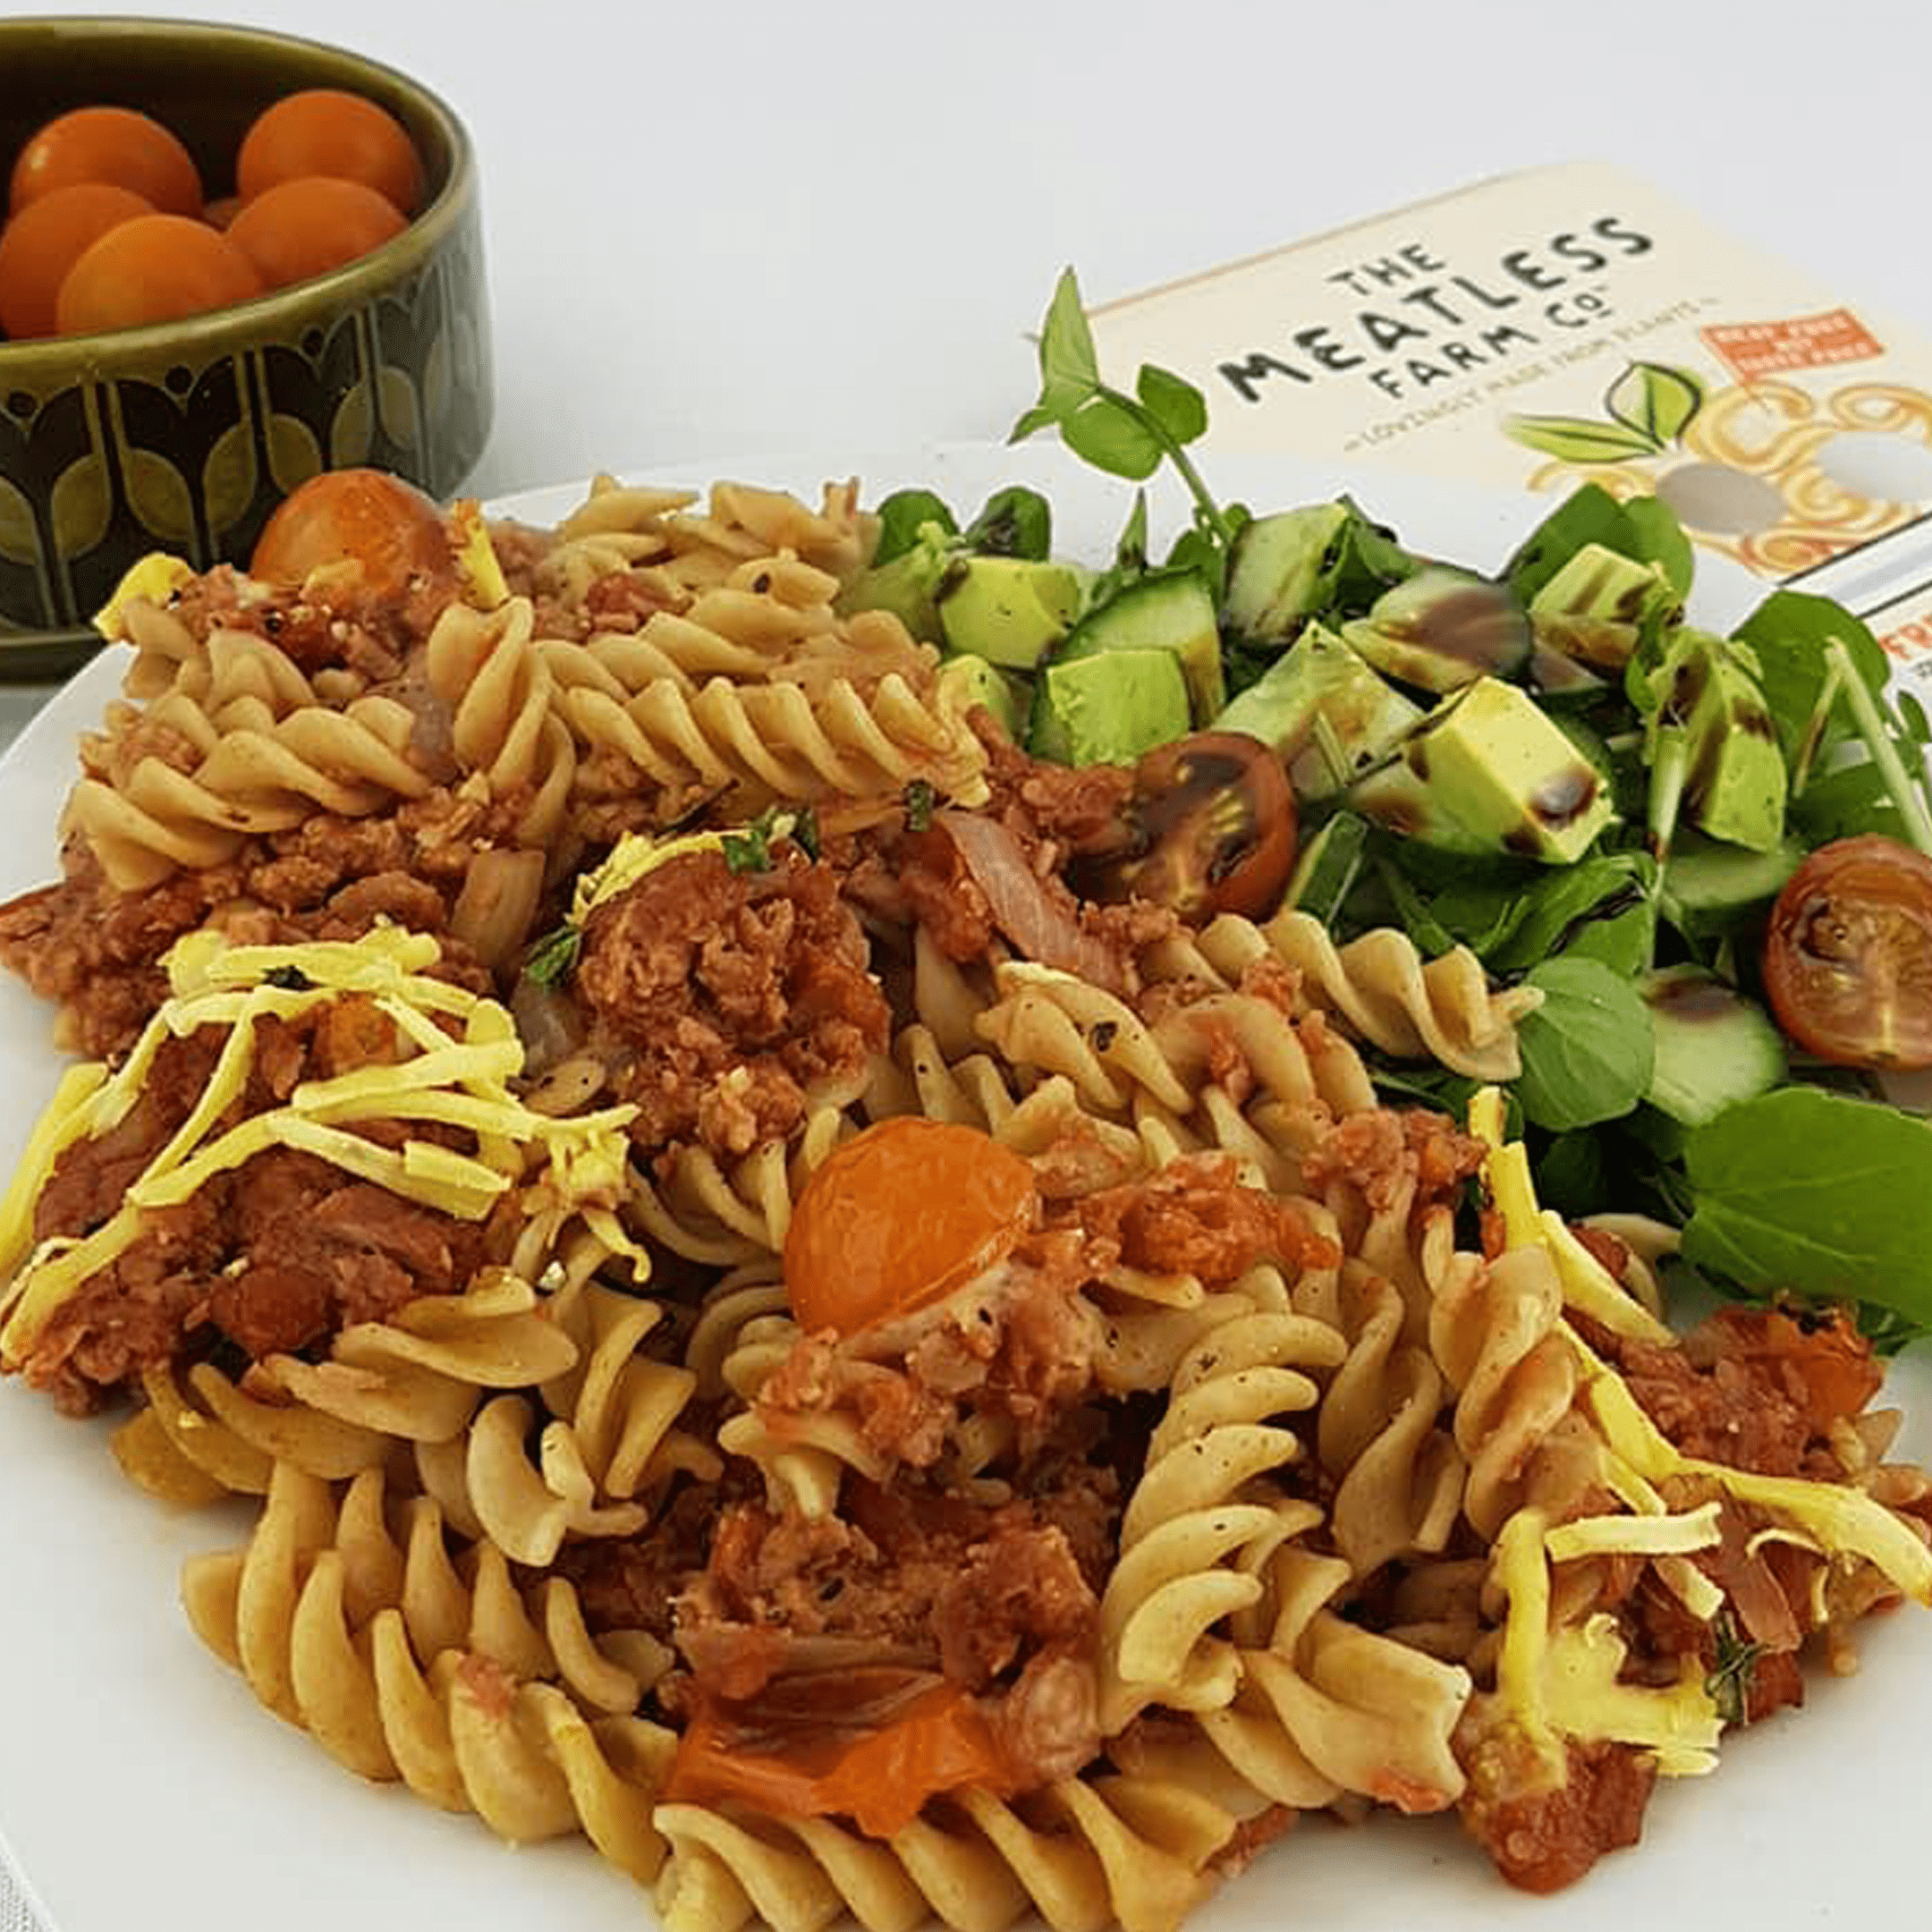 Pasta with meatless mince and avocado salad